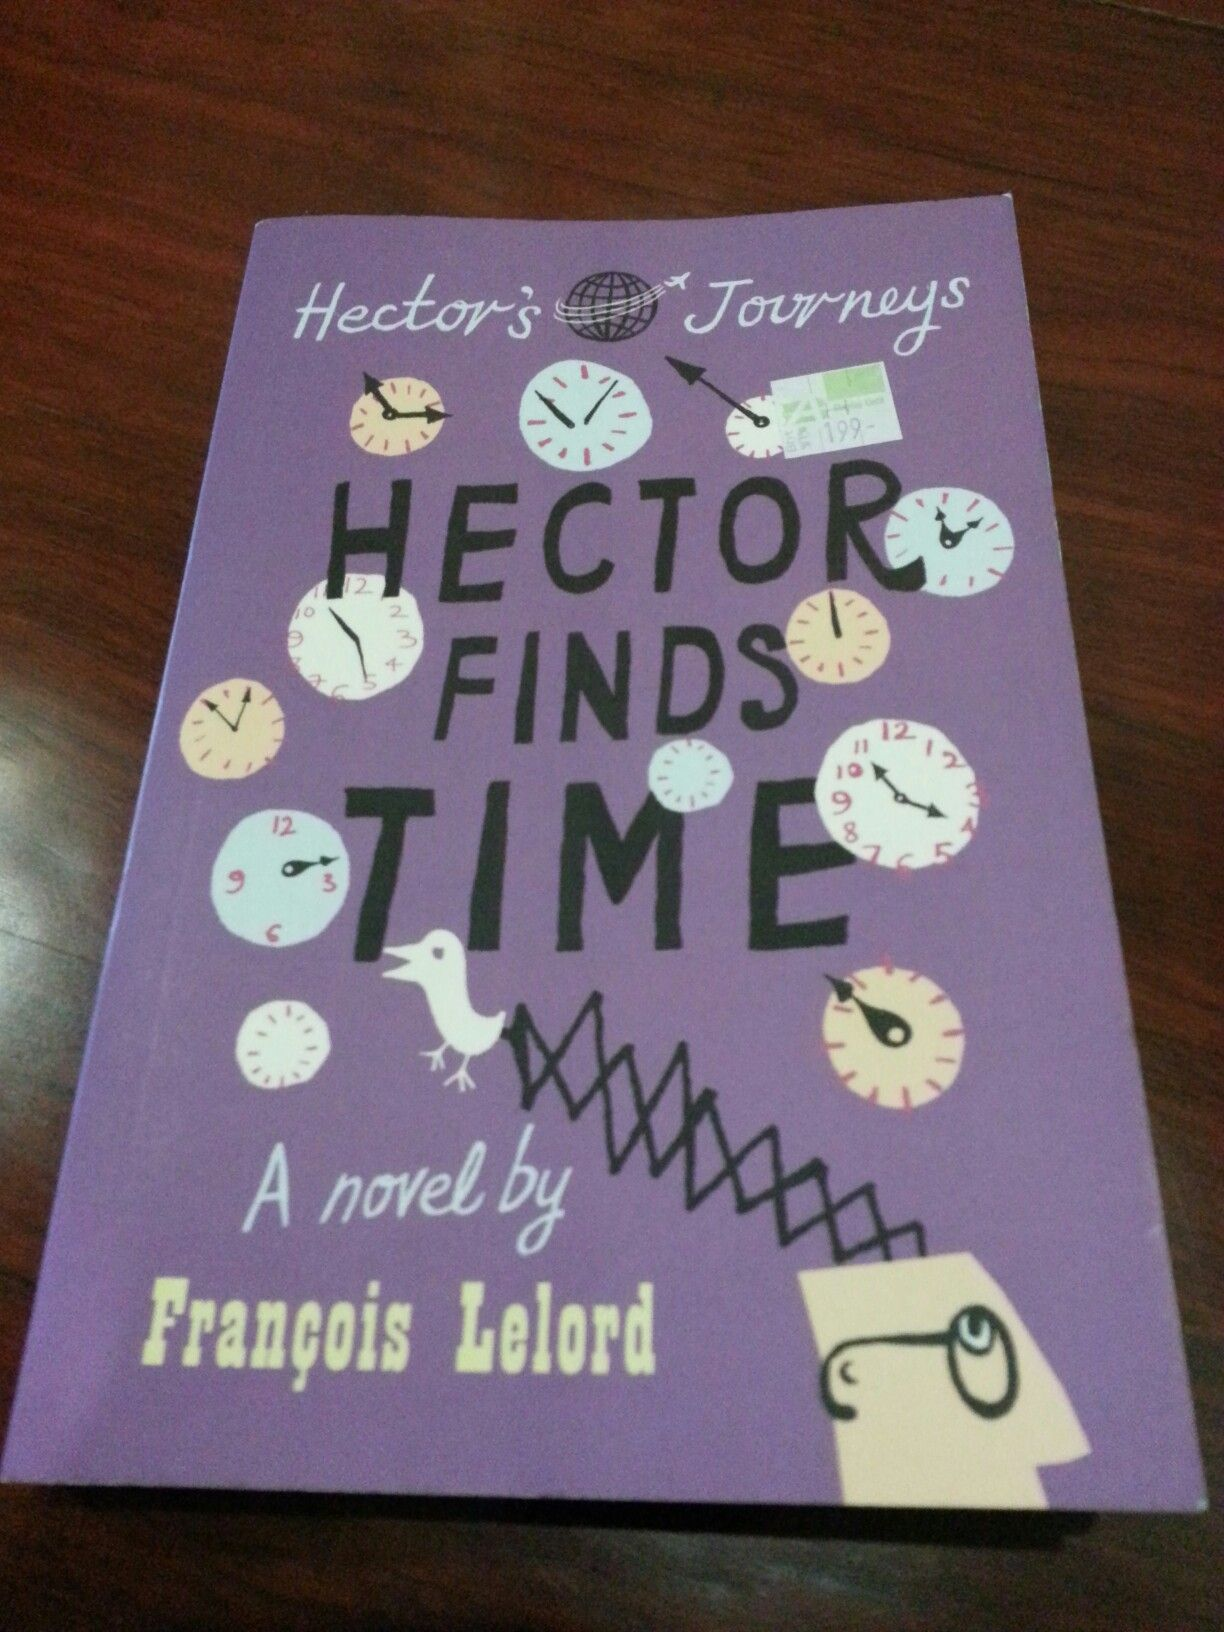 Perspective of time hector finds time read book buch